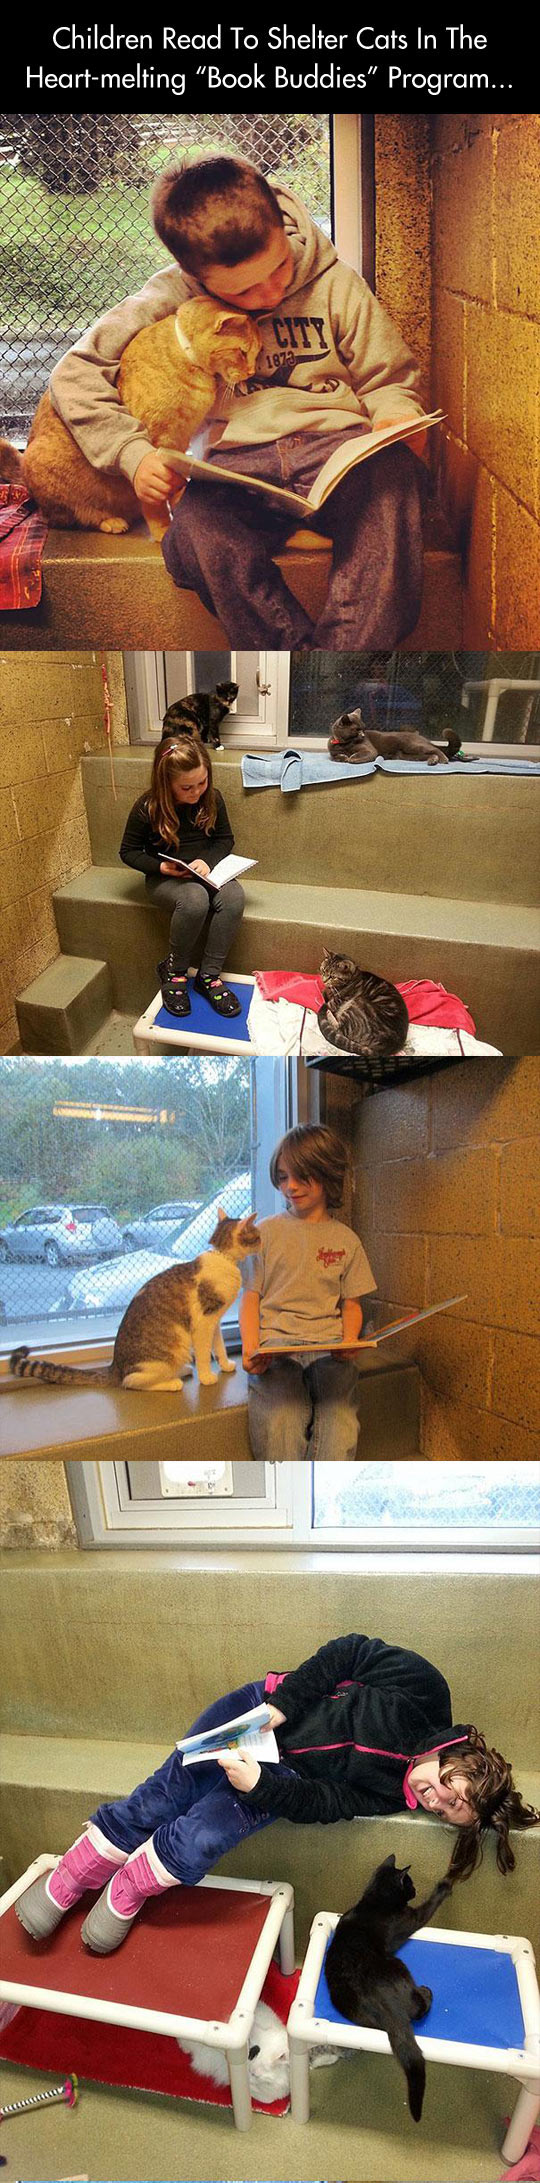 funny-reading-children-shelter-cats-book-buddies